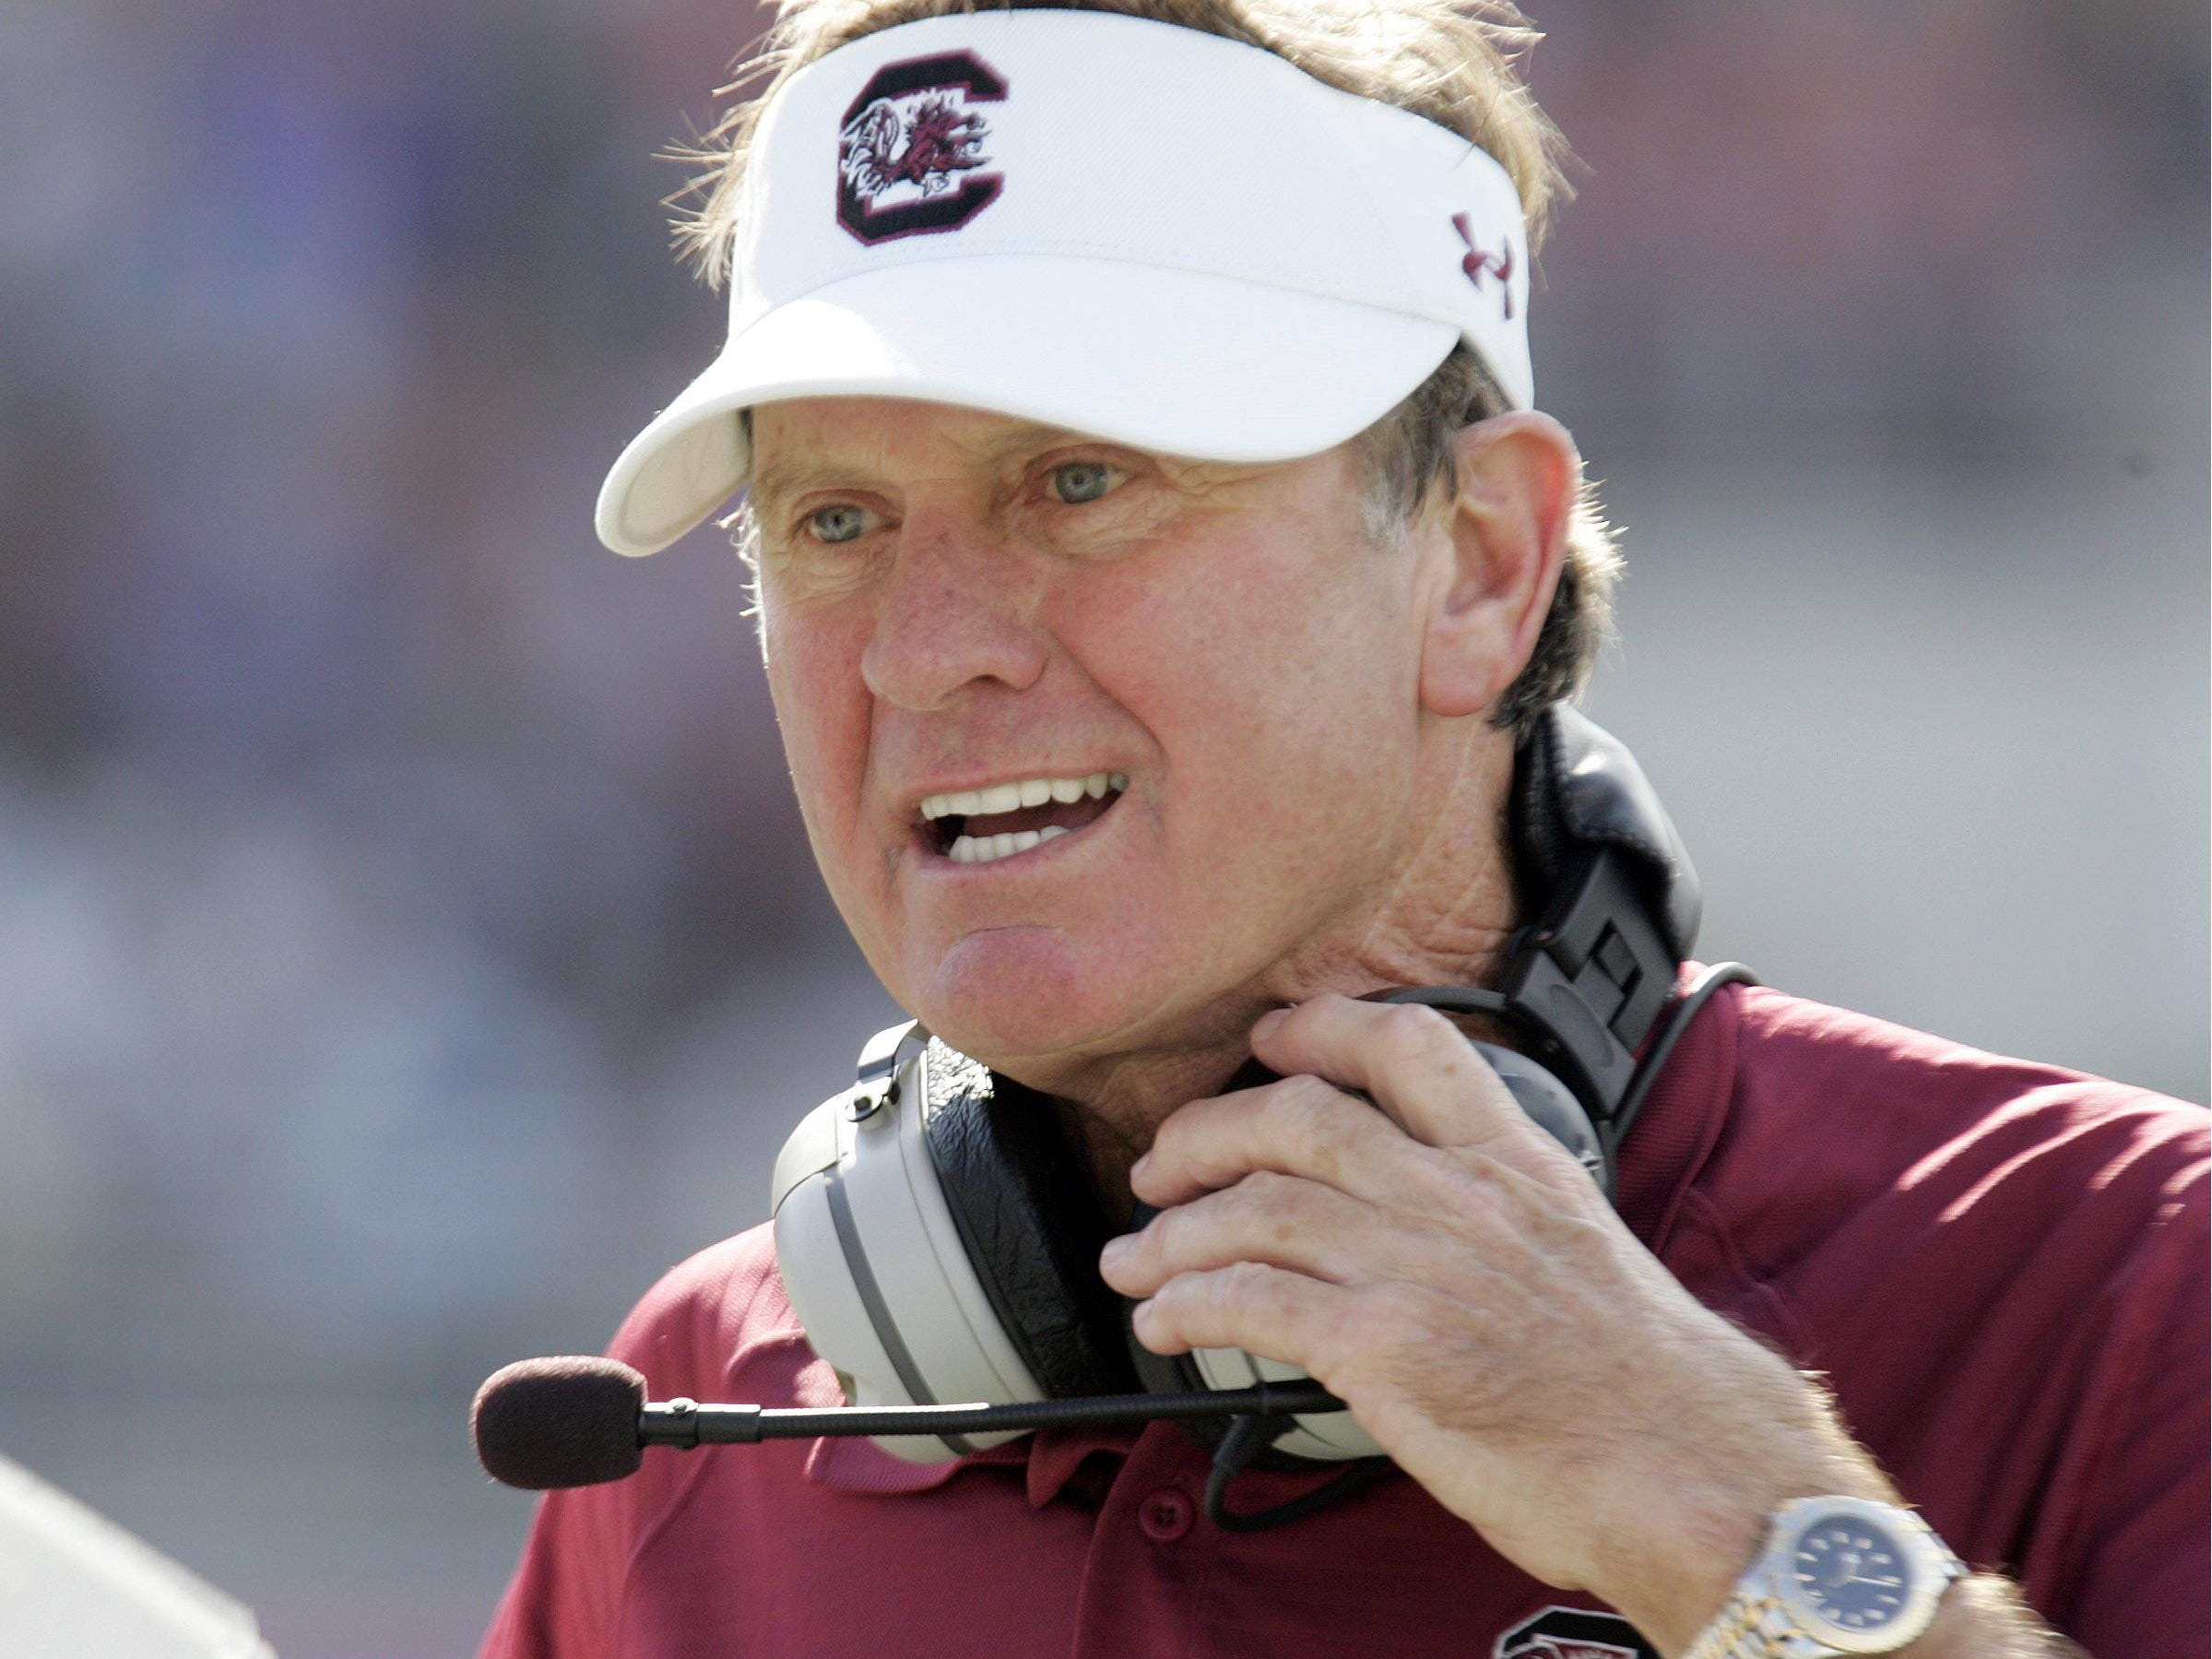 Steve Spurrier believes he has enemies in the media that want to hurt the USC football program by focusing on his age, but his players say they are united in their support for the 70-year-old football coach.